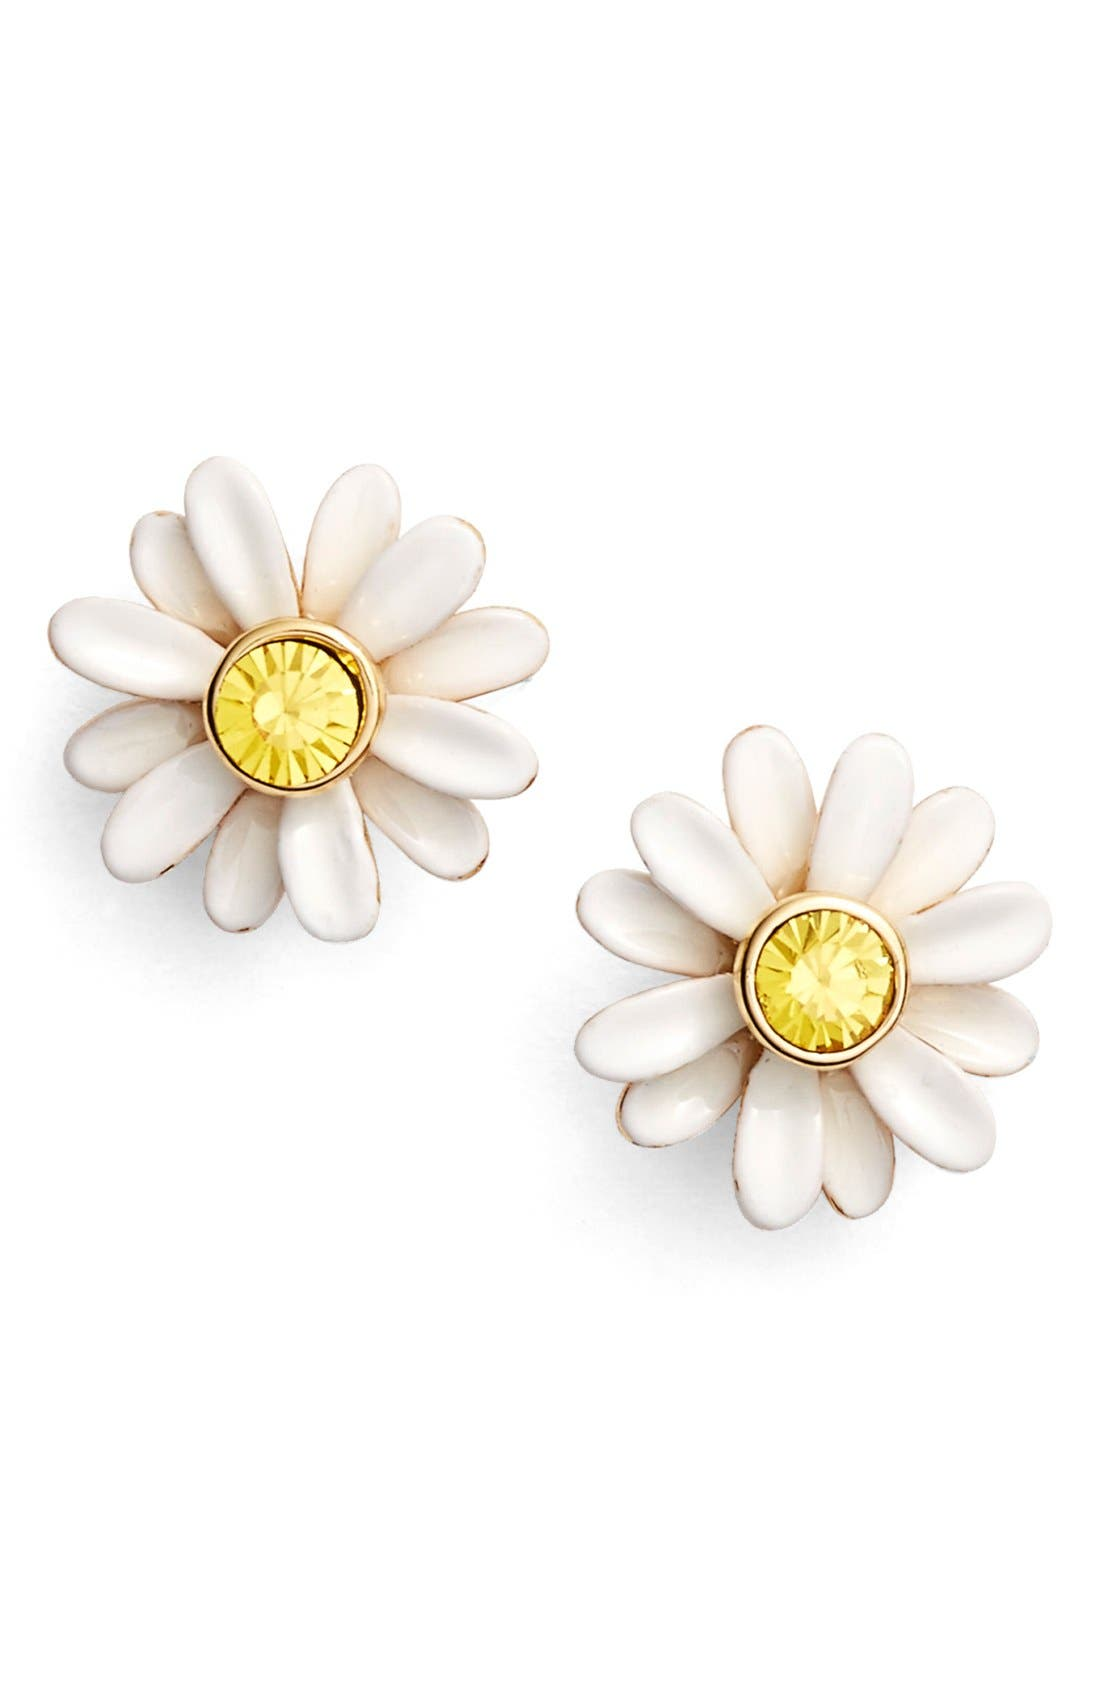 Main Image - kate spade new york 'dazzling daisies' stud earrings